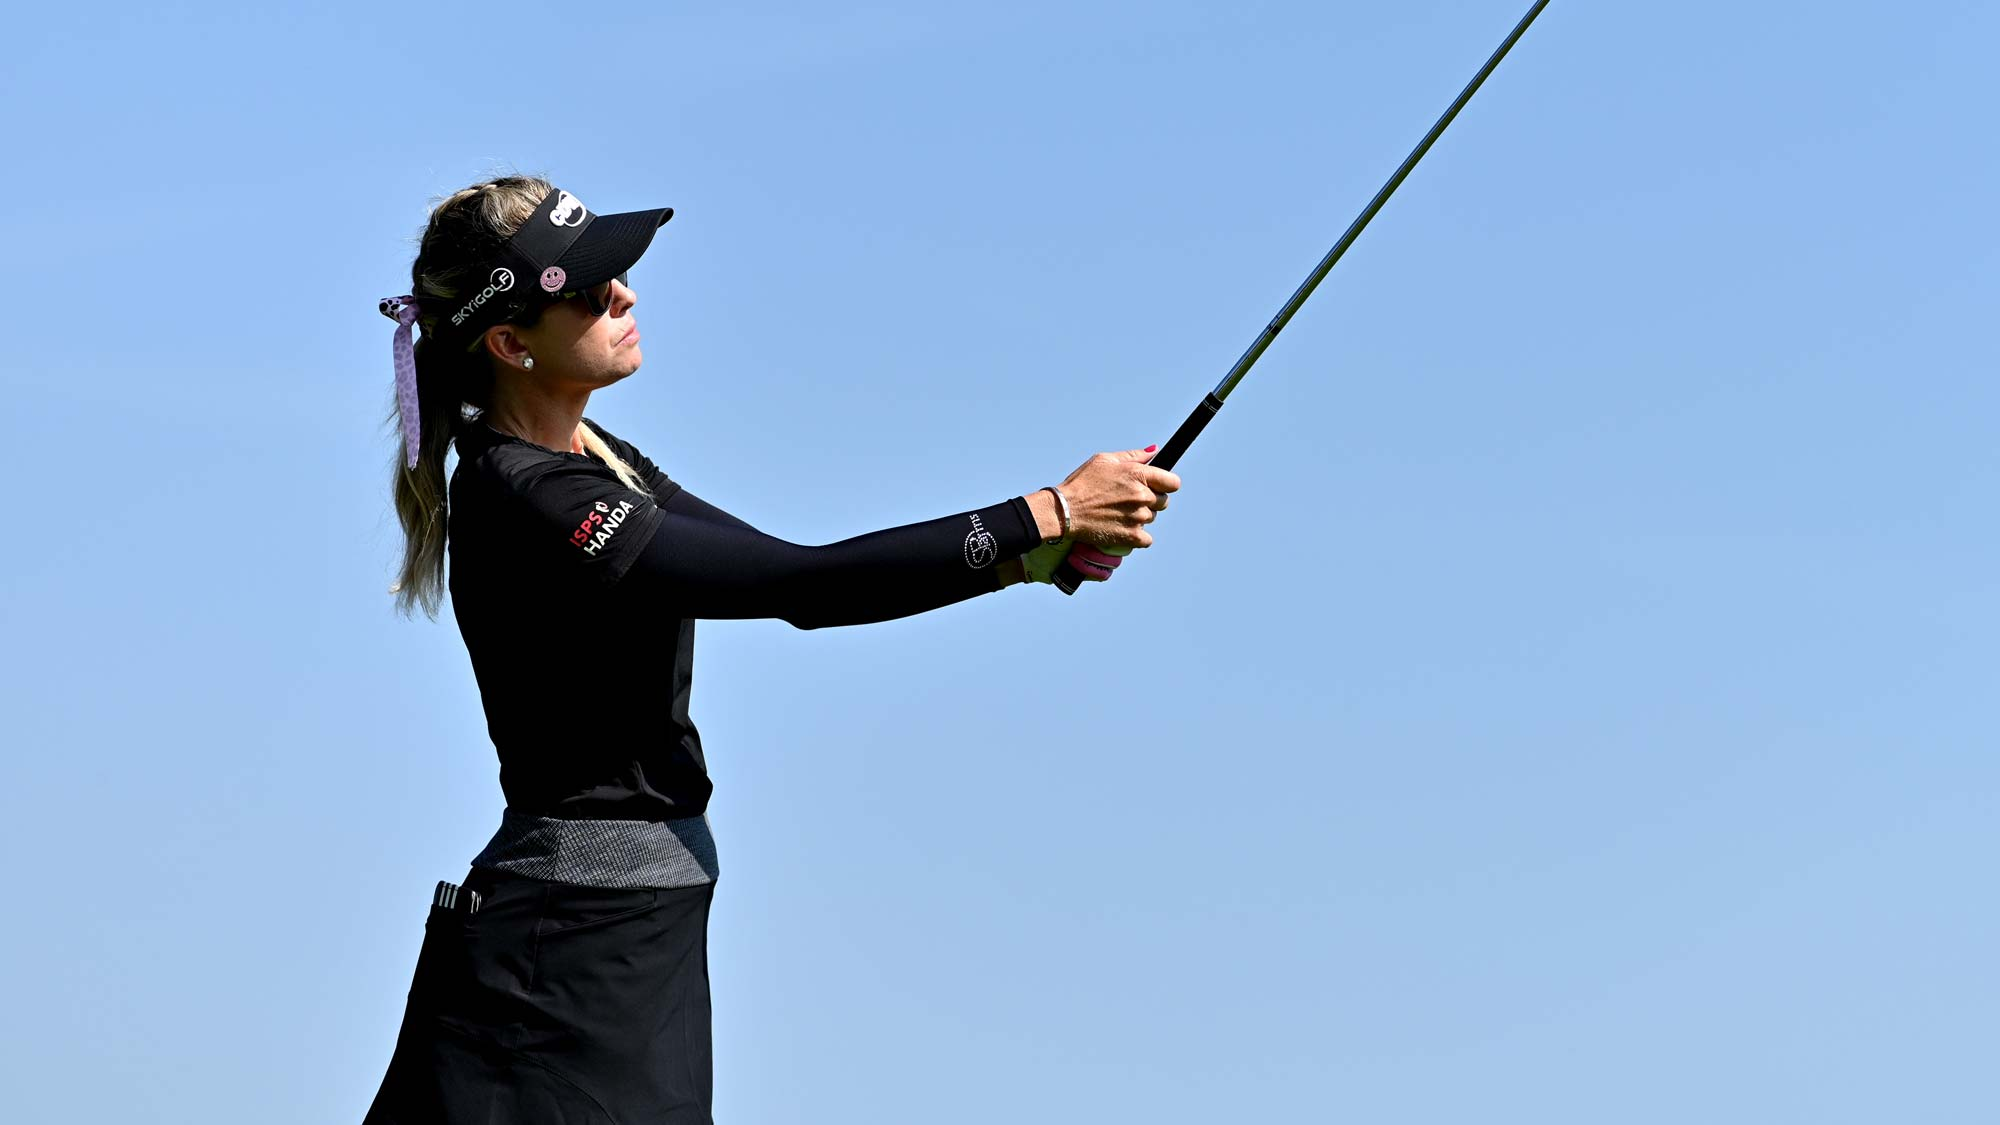 2019 the evian championship early round 1 update